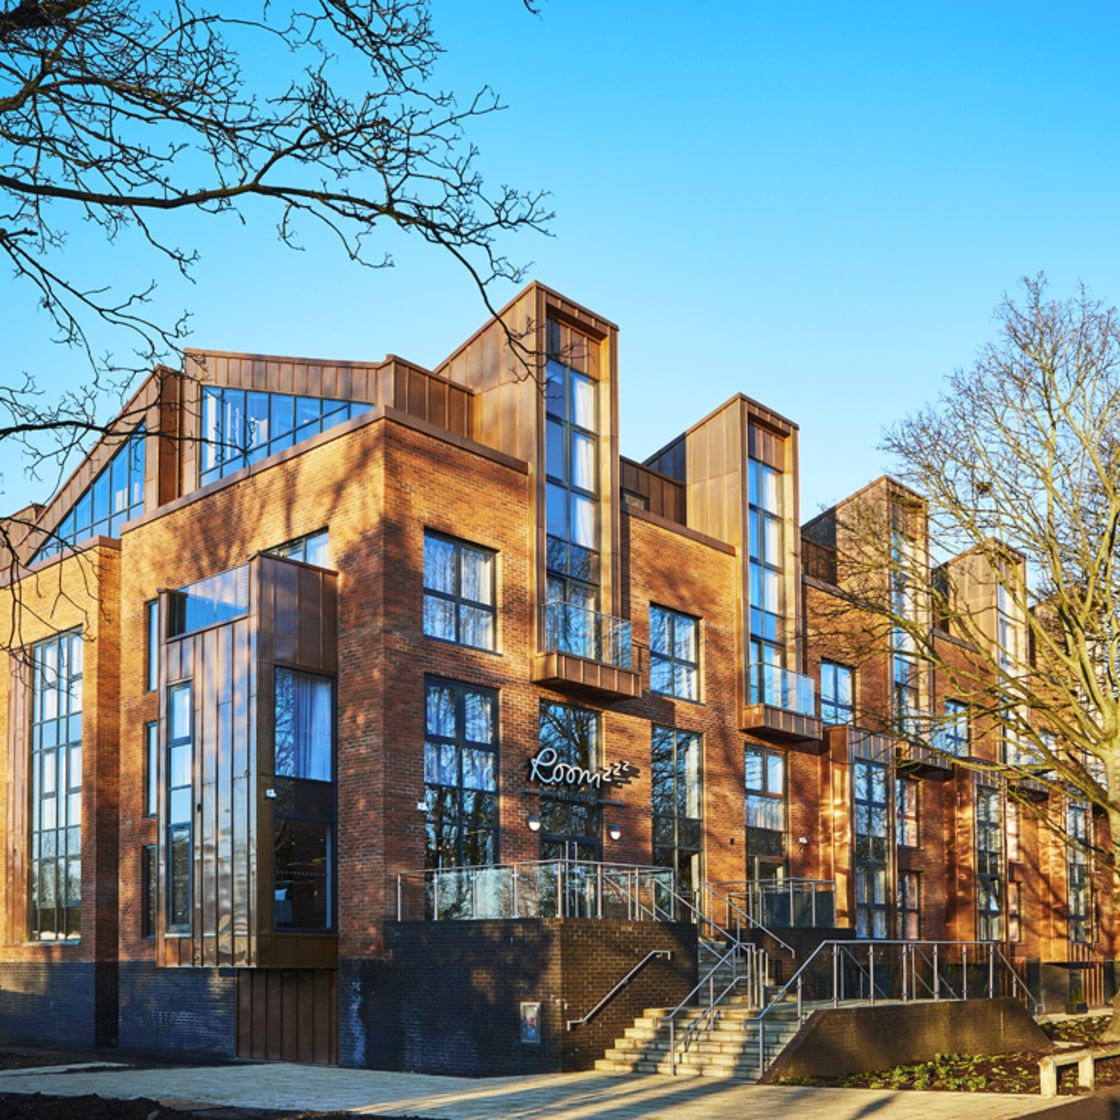 IconInc @ Roomzzz York external. Student Accommodation in York